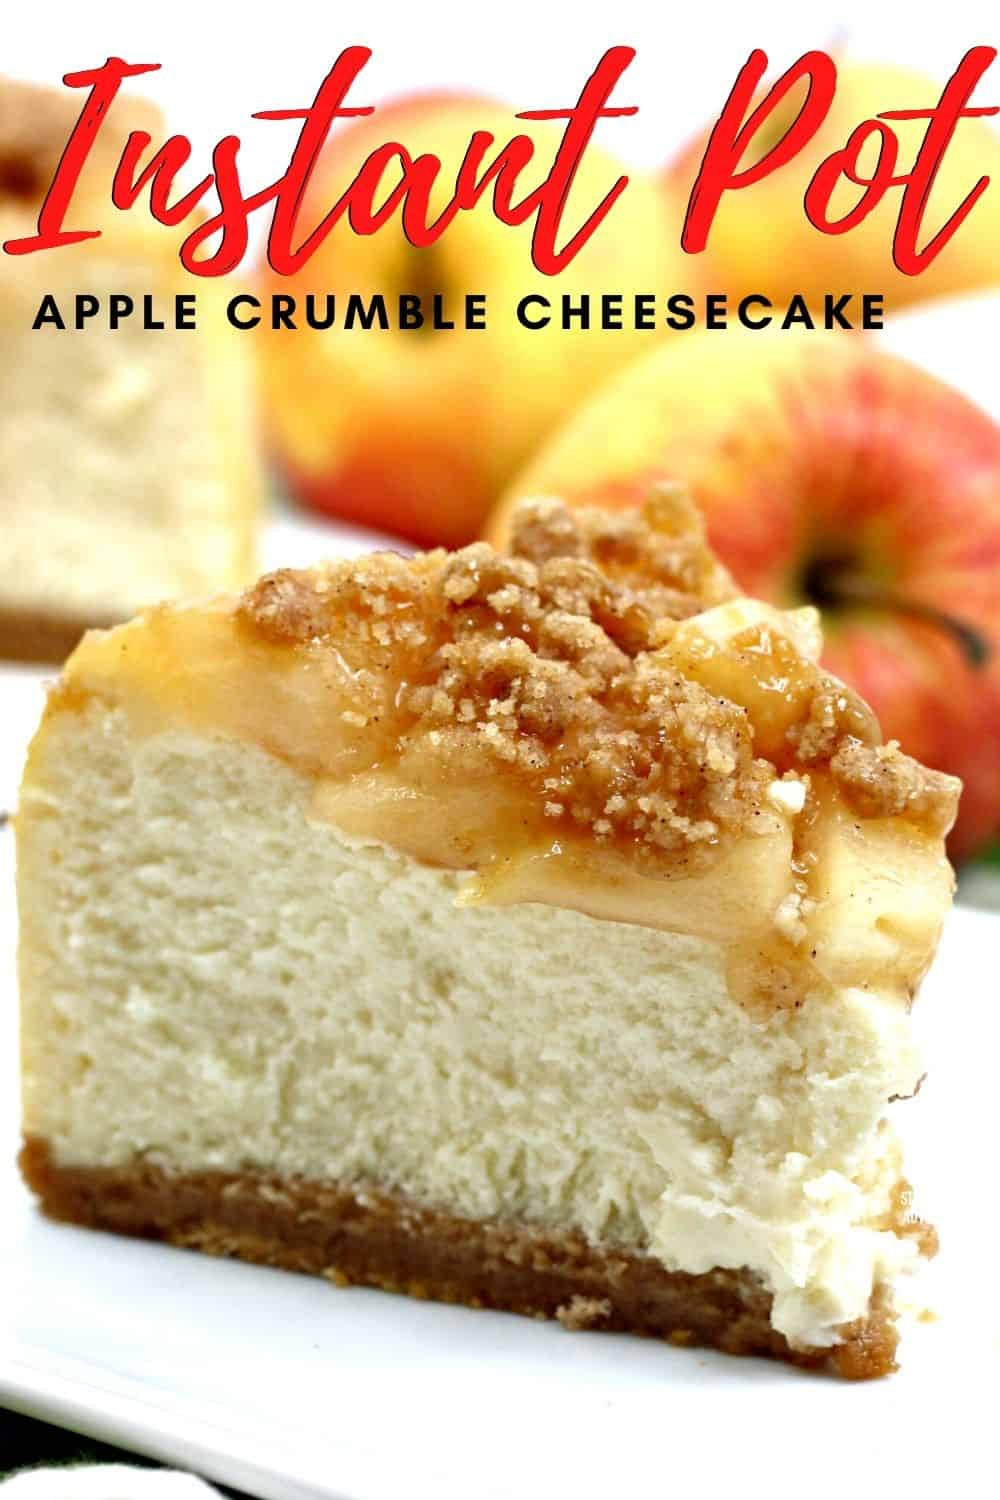 The best of both worlds, apple crumble and cheesecake made using an Instant Pot. Learn how to create this recipe in minutes. #instantpot #cheesecake #apple via @mystayathome